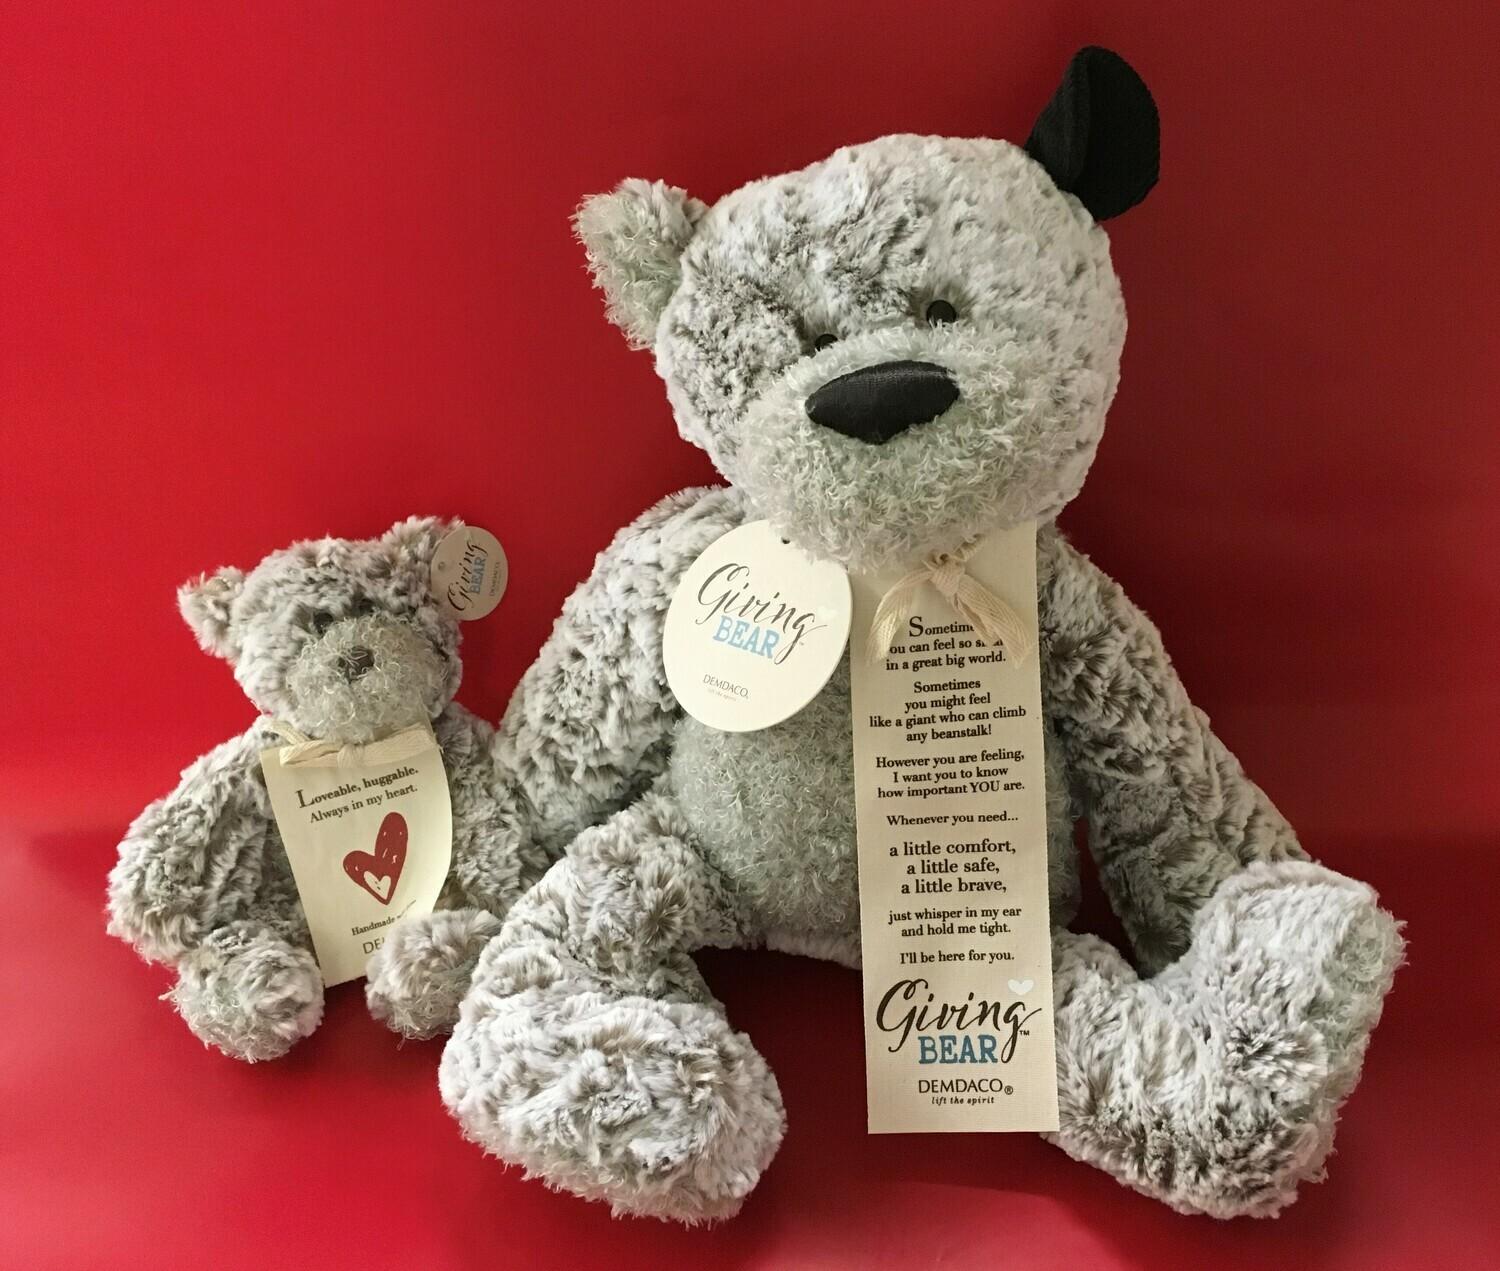 The Giving Bears.  2 Sizes.  Show someone you are thinking of them.  Add a box of Chocolates to really brighten their day.